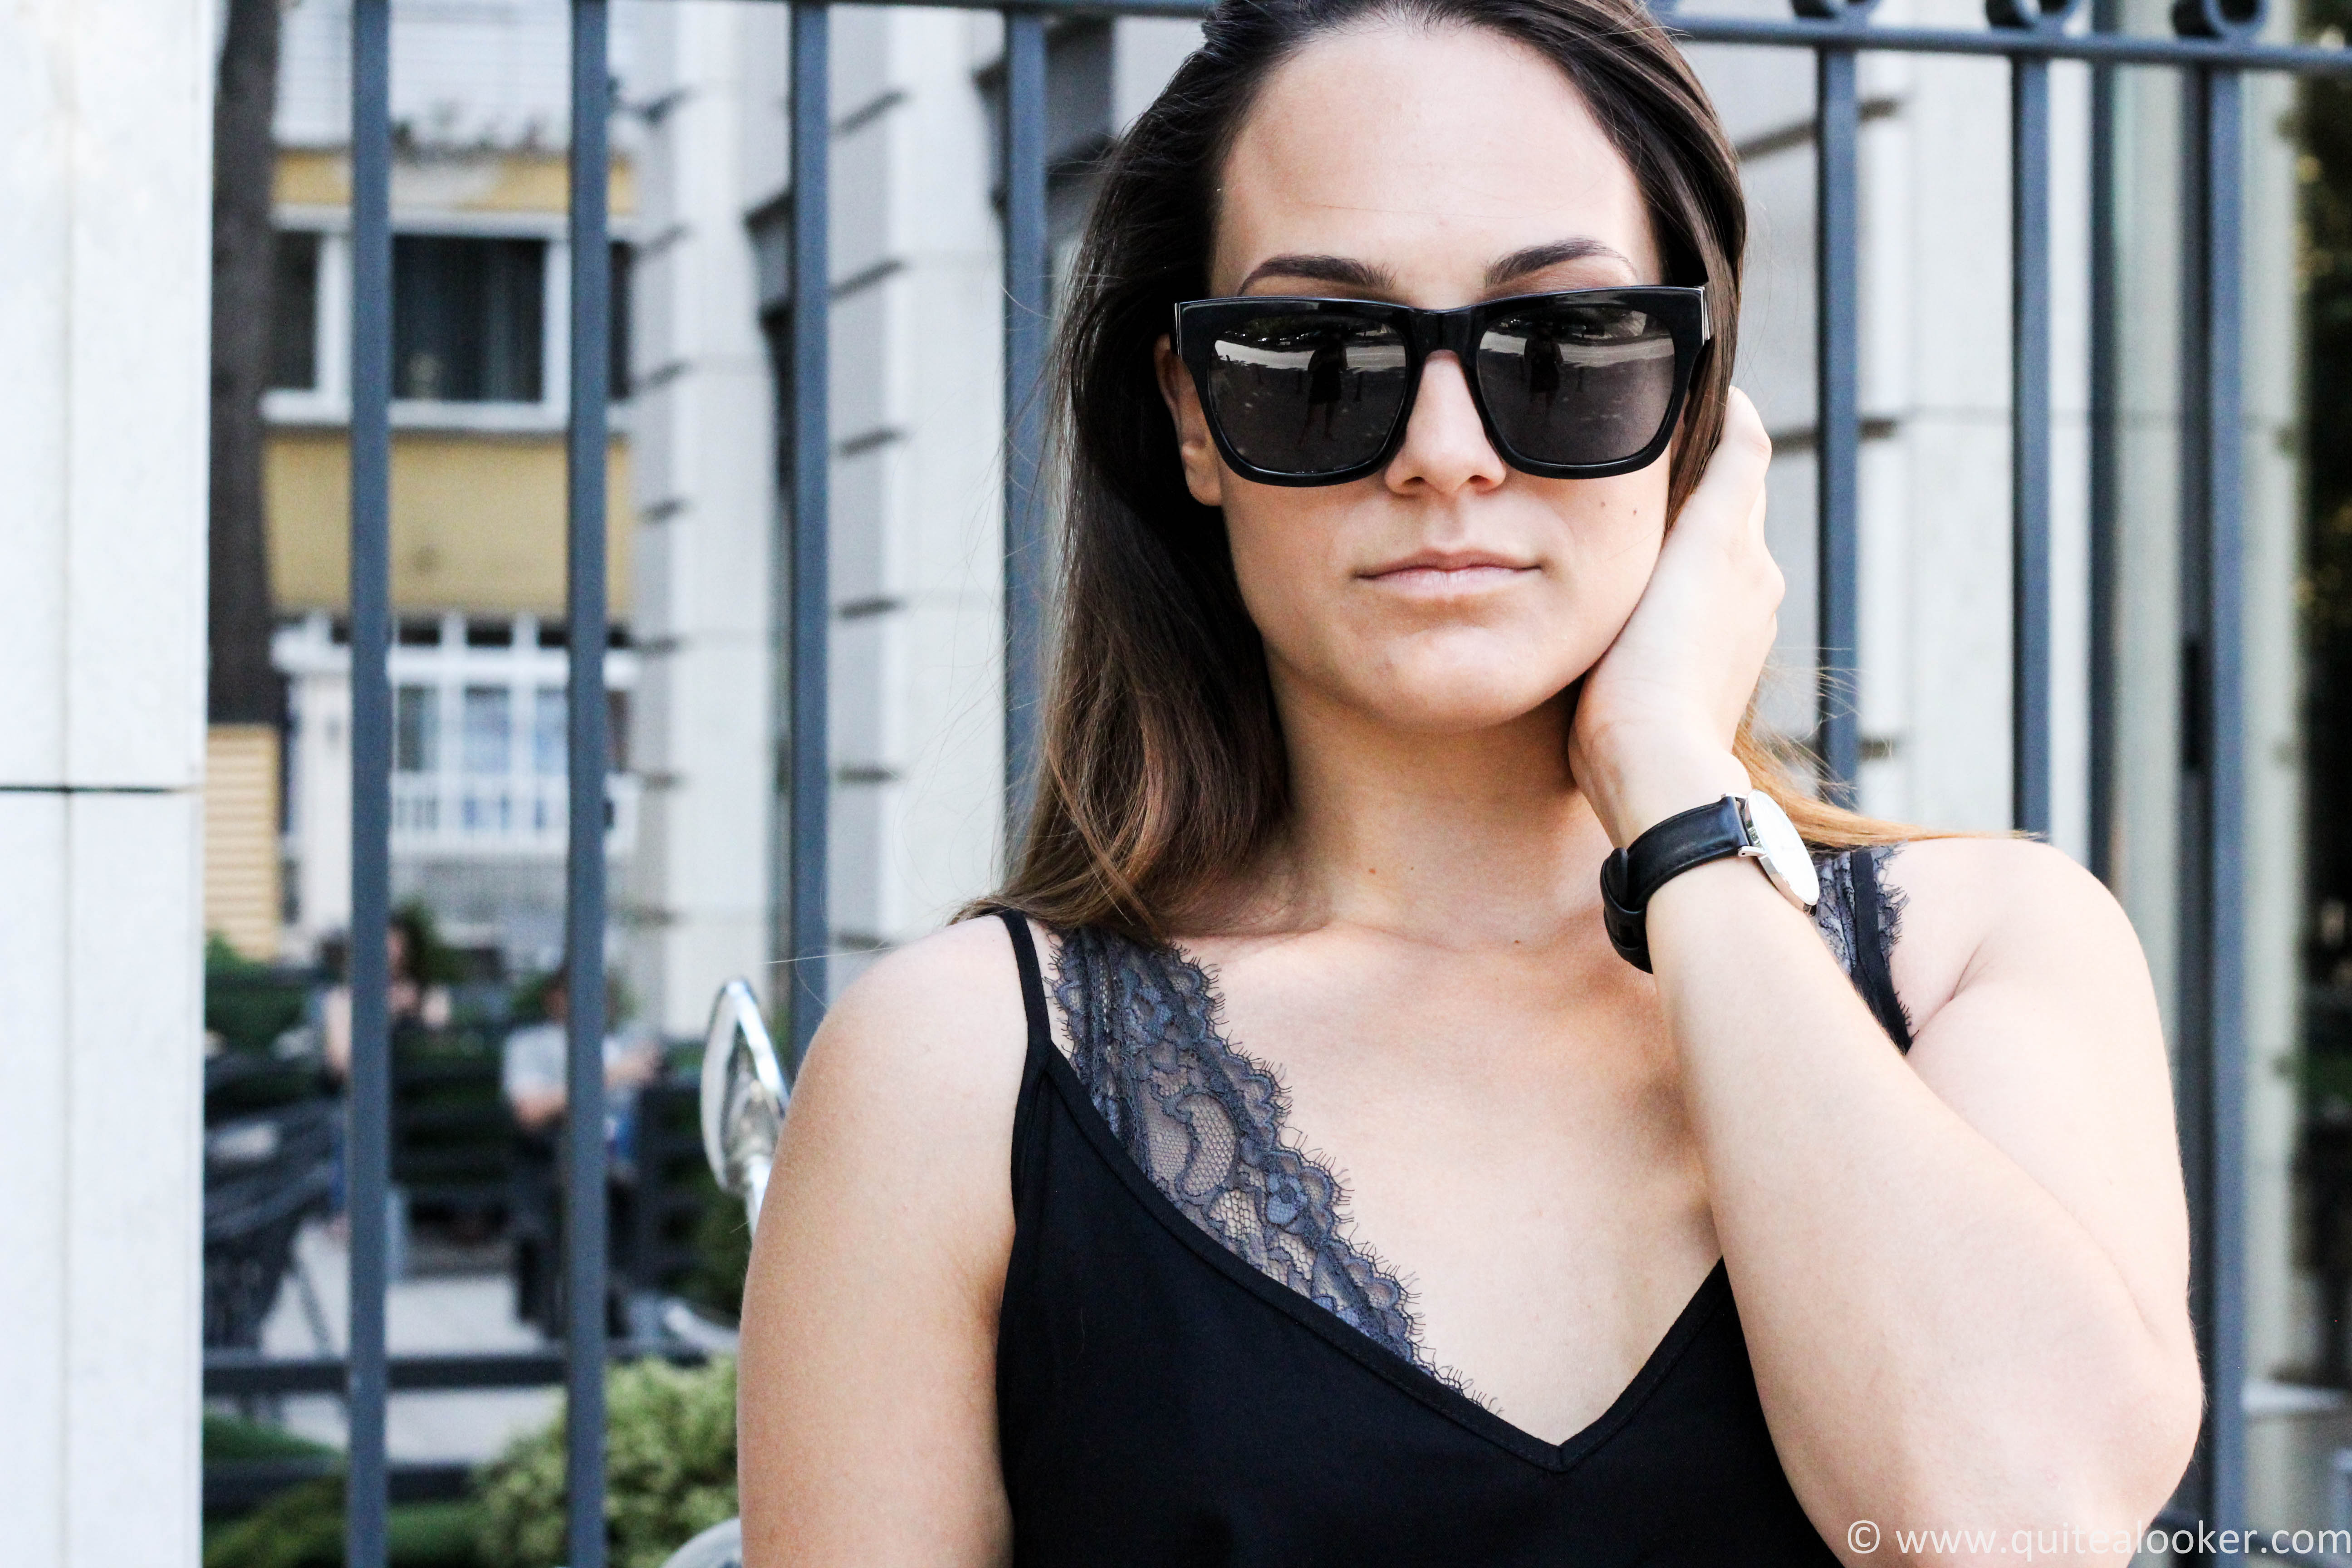 outfit post deichmann bulgaria in collaboration with bulgarian fashion blogger quite a looker vespa polette eyewear hm jumpsuit www.quitealooker.com